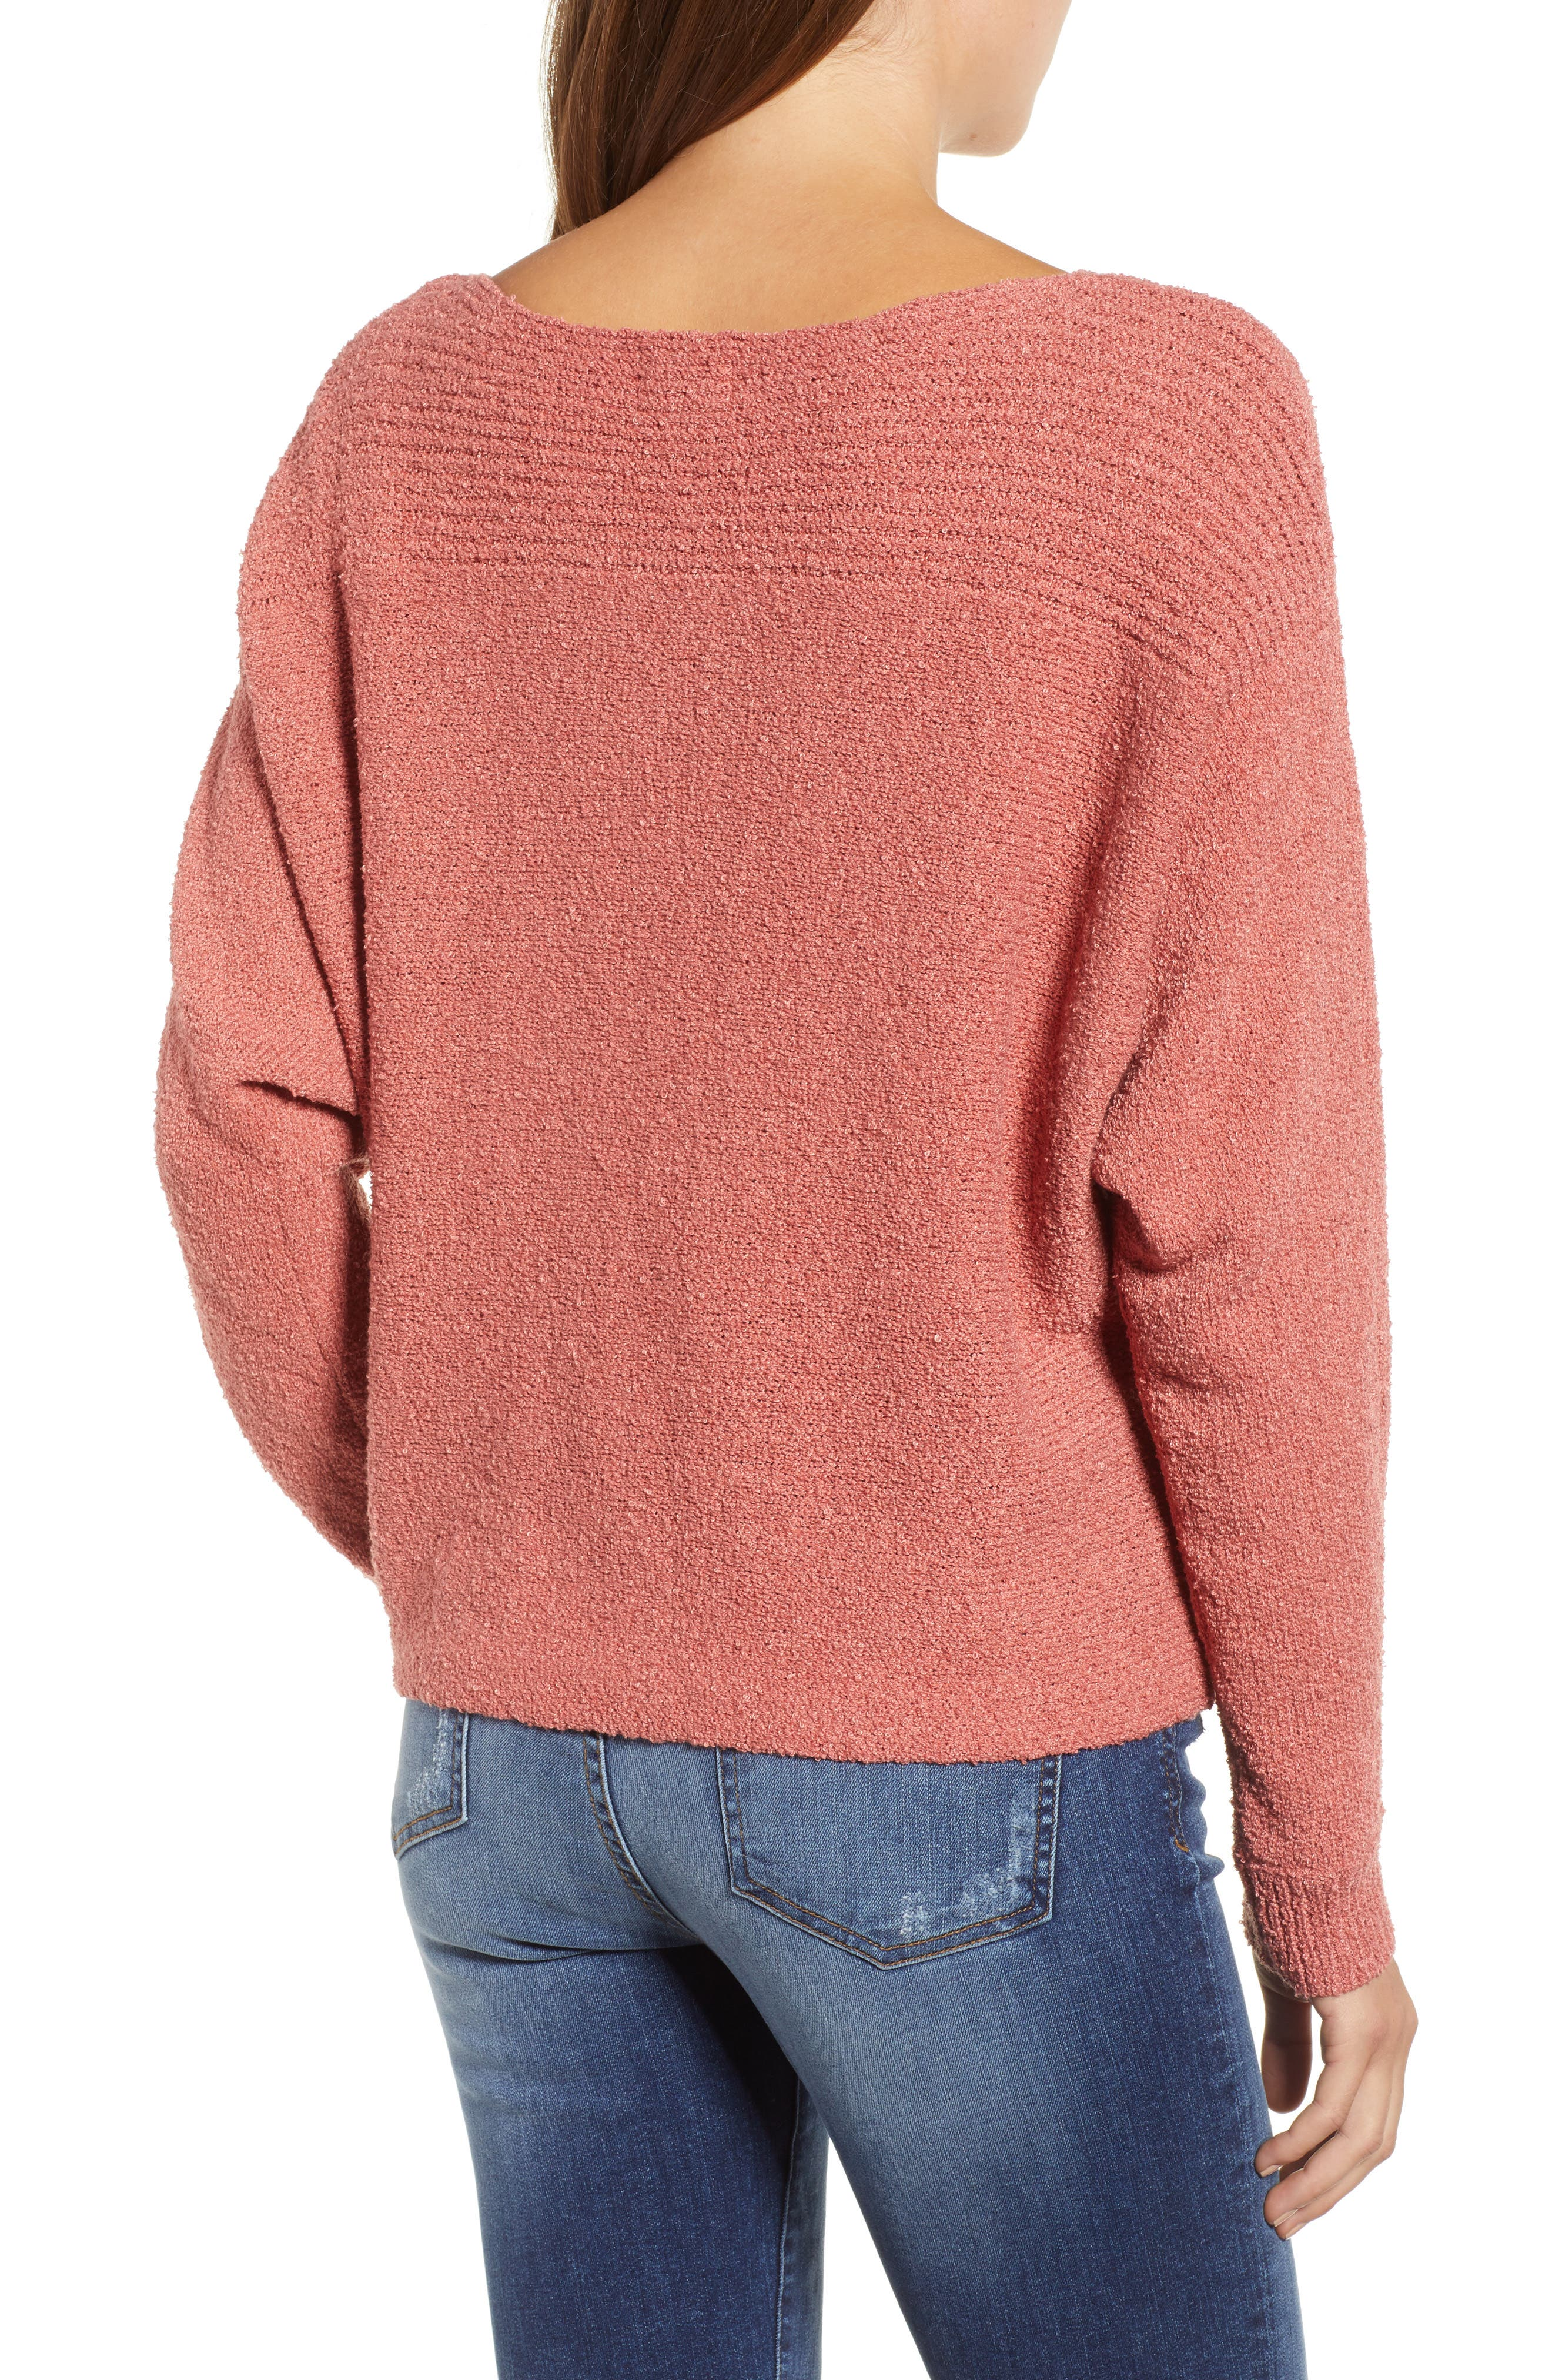 Calson<sup>®</sup> Dolman Sleeve Sweater,                             Alternate thumbnail 11, color,